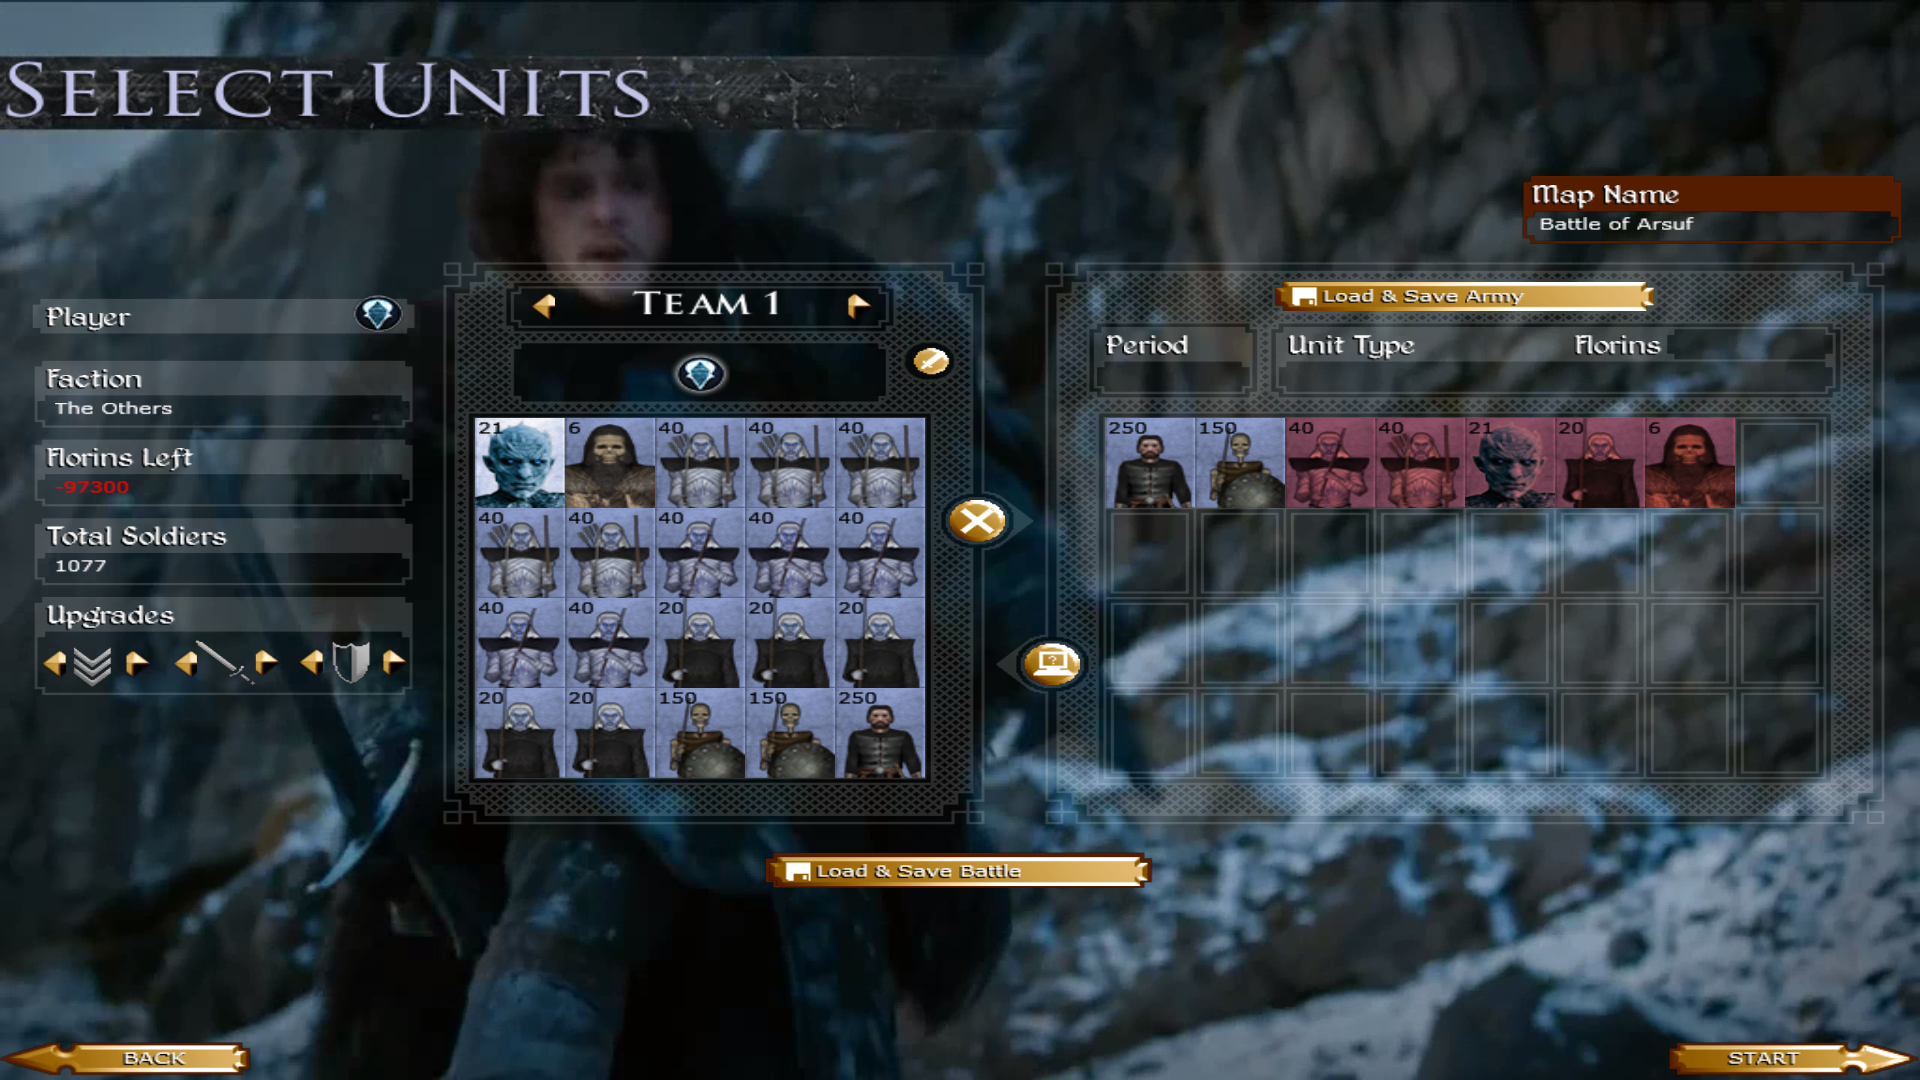 The Others roster is similar to that of the Fire & Blood mod.